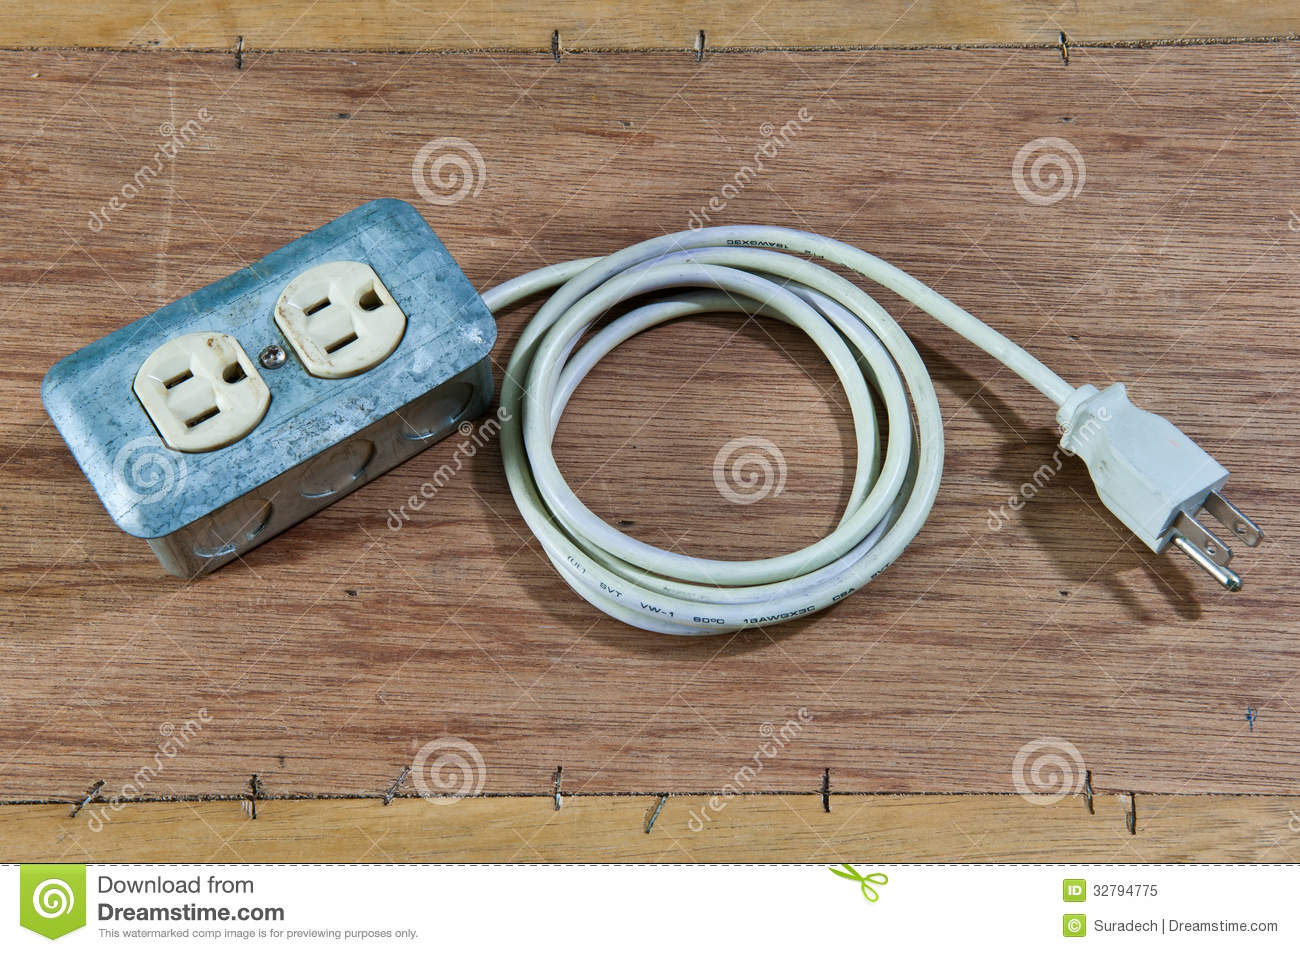 how to produce electricity at home from extension cord